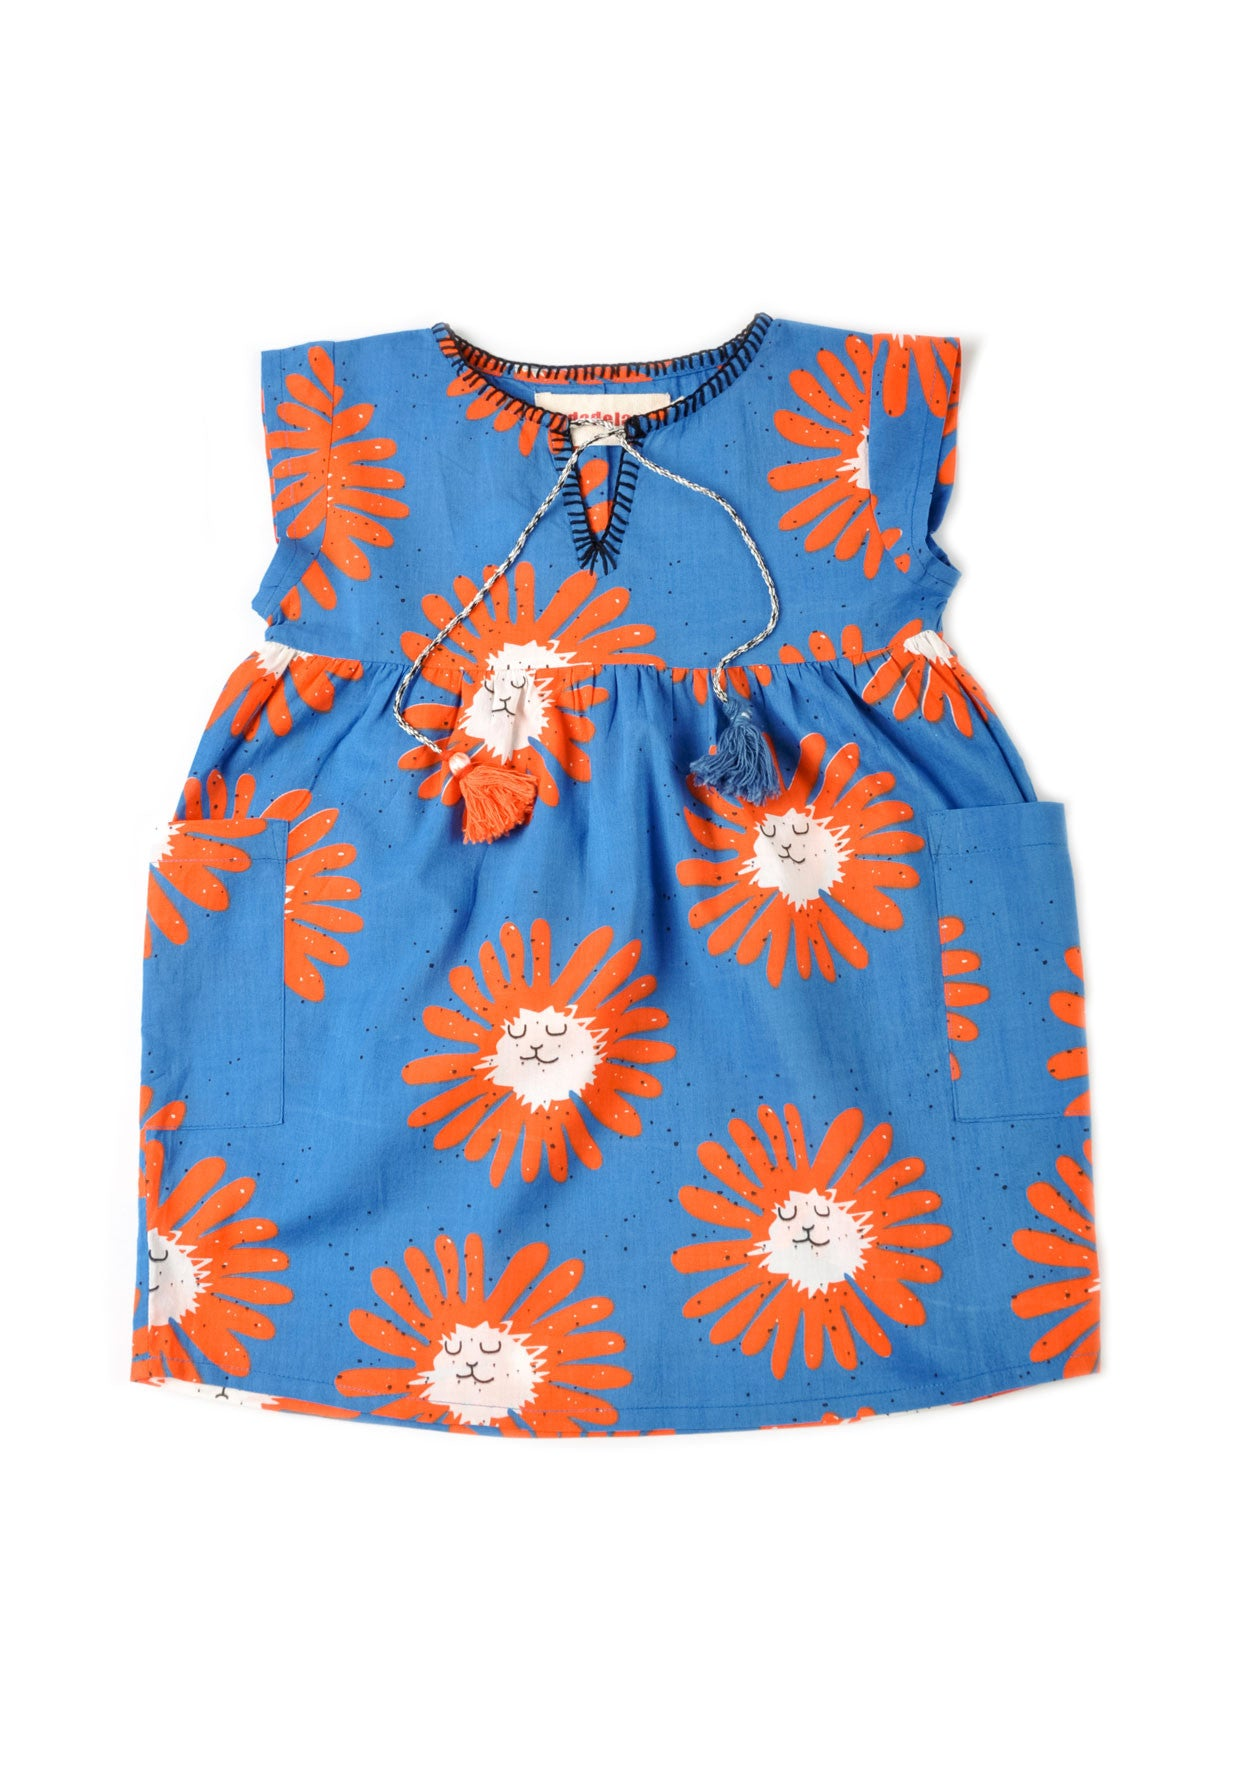 Nadadelazos Little Dandelion Tunic Dress